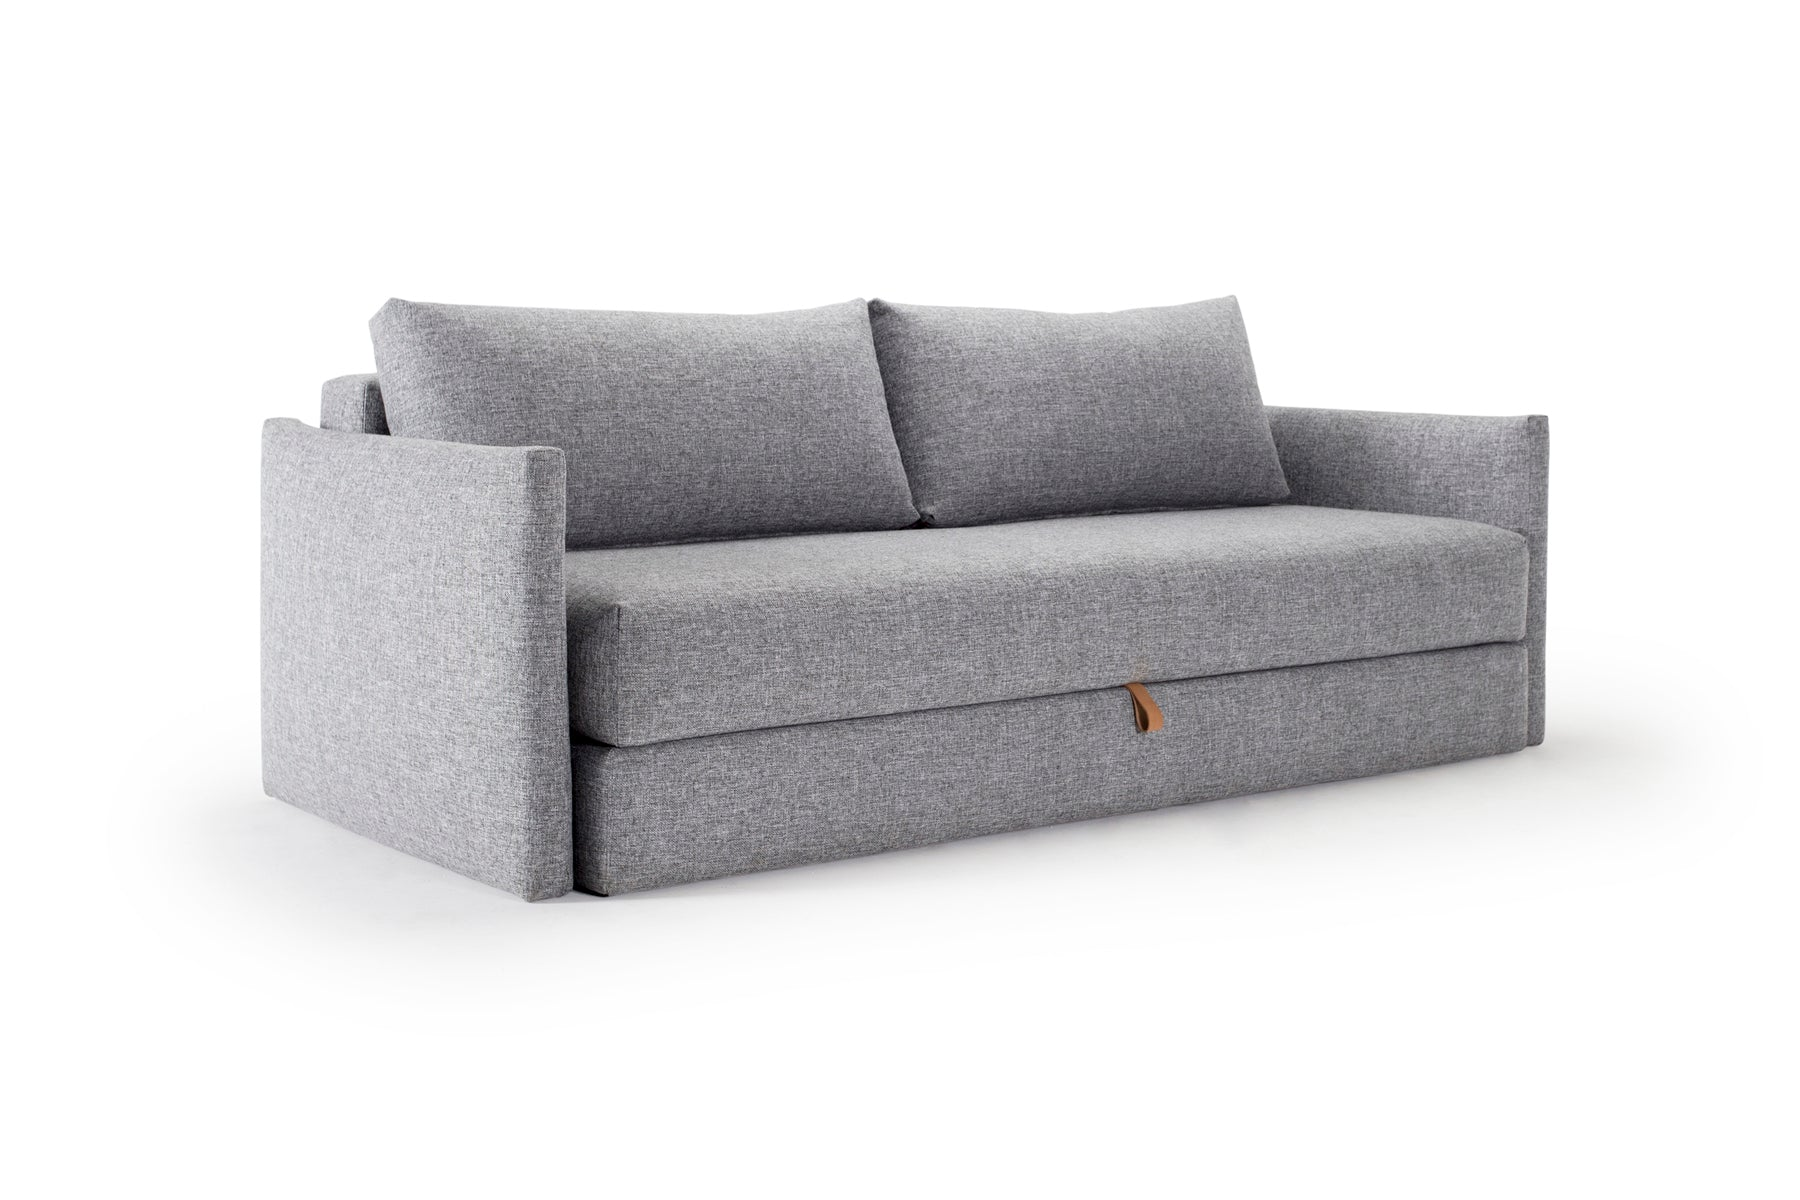 Tripi Sleeper Sofa